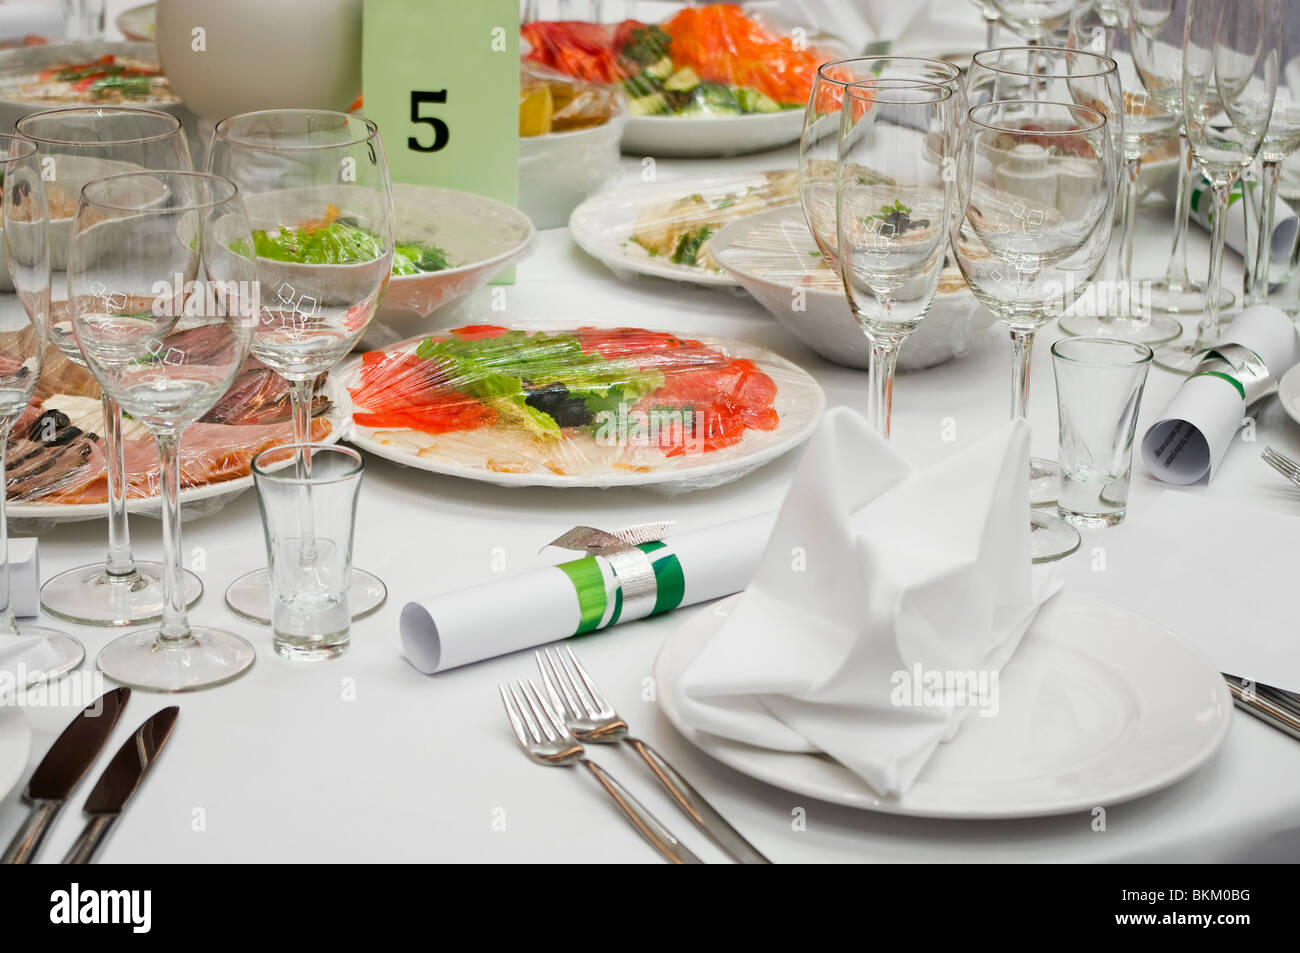 Exceptionnel Detail Of Fancy Table Set For Holiday Dinner. Table Appointments For Dinner  In Restaurant. Formal Dinner Service As At A Wedding